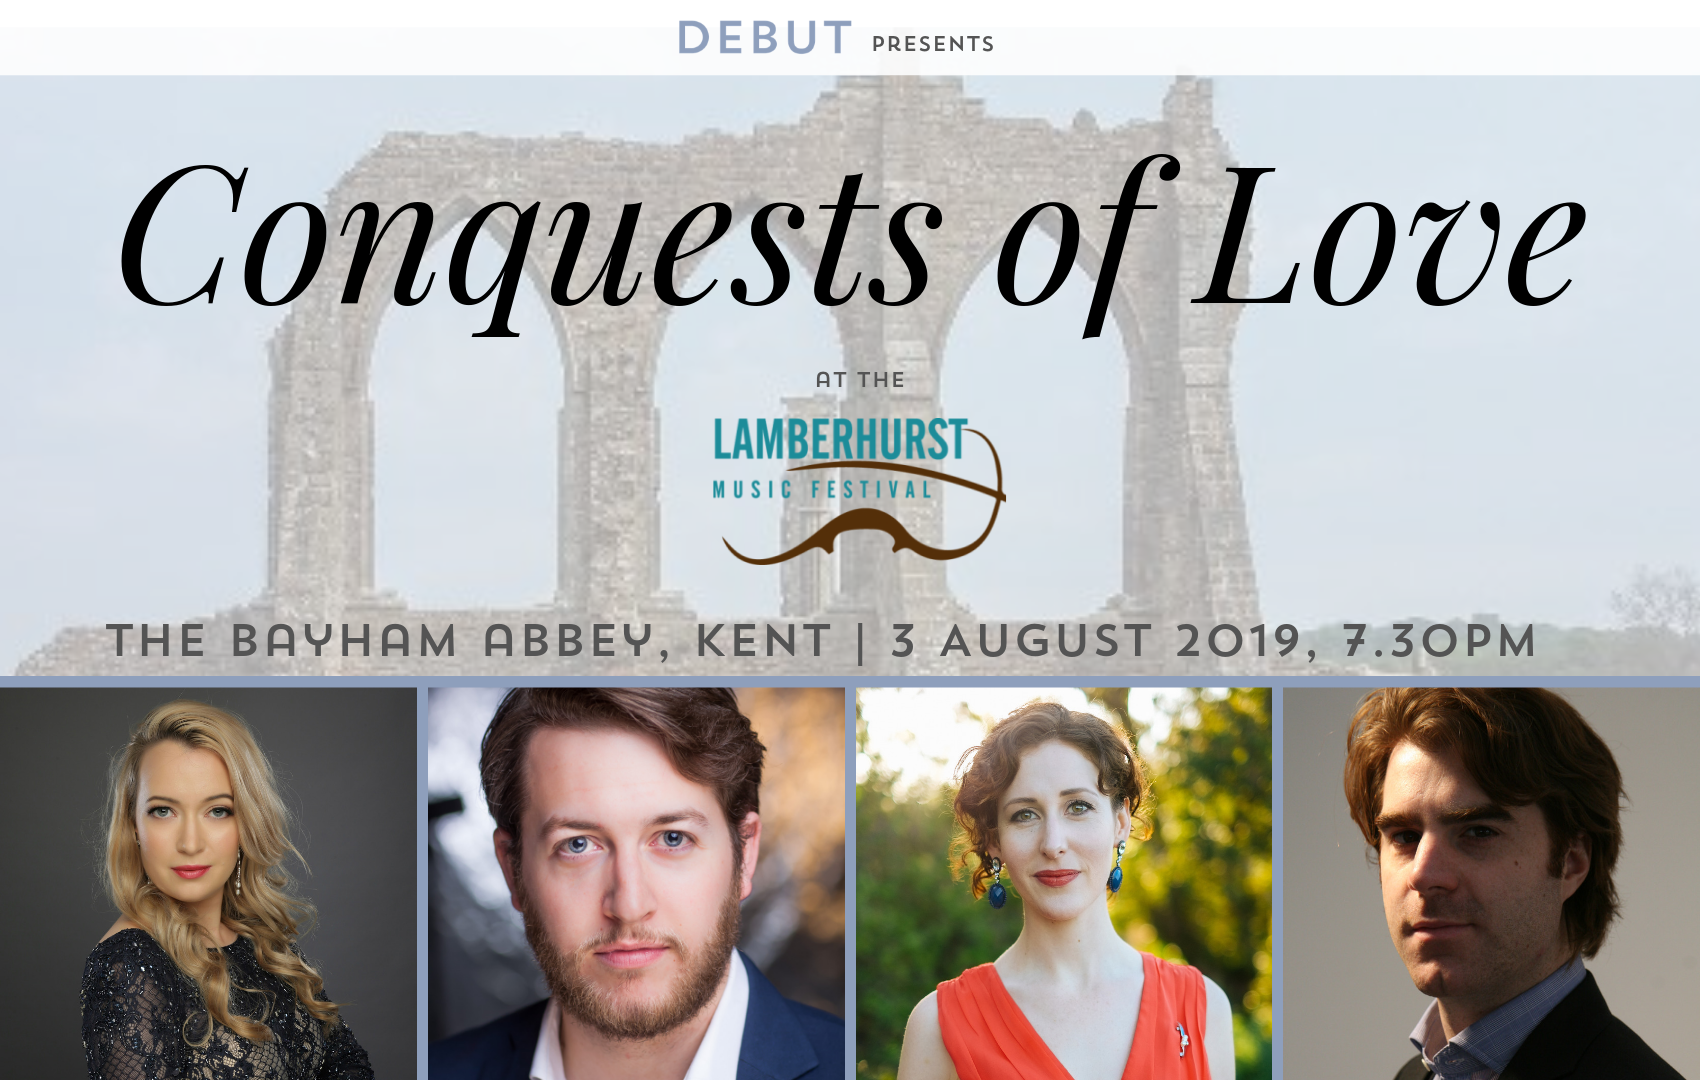 Conquests of Love | Bayham Abbey, Lamberhurst Music Festival, DEBUT.png